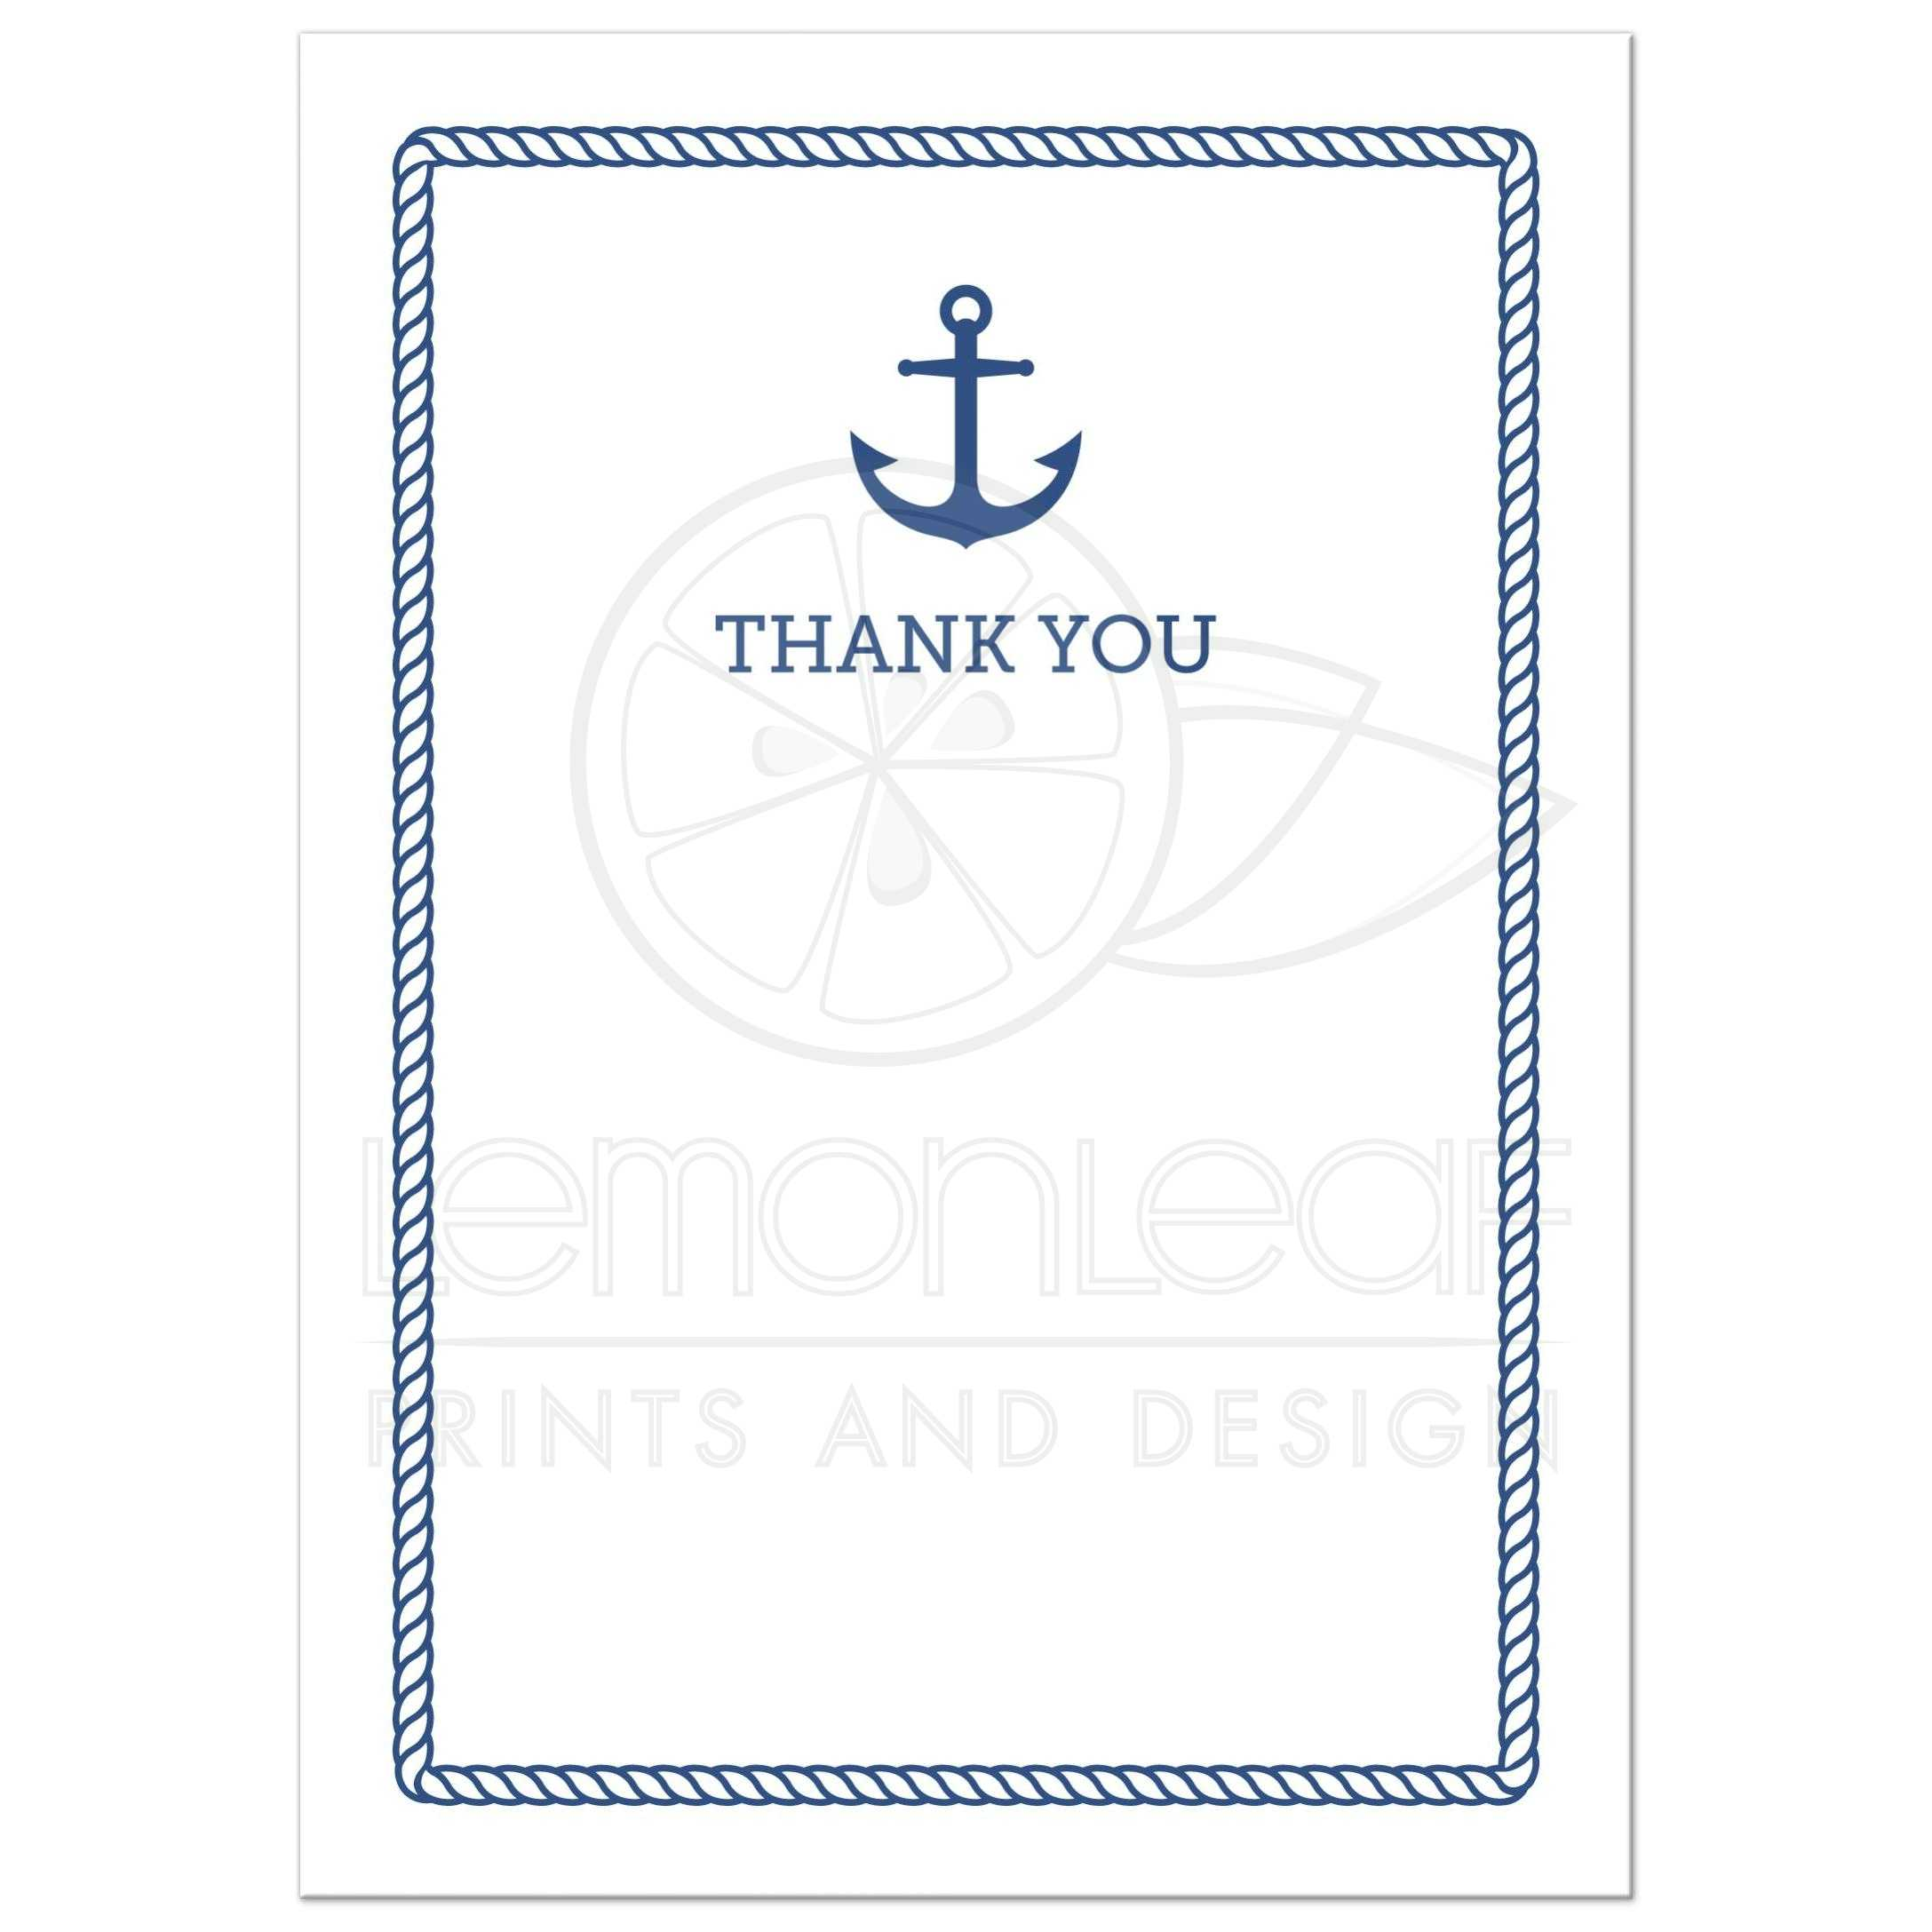 nautical baby shower thank you card with anchor and rope border rh lemonleafprints com  nautical border clip art free